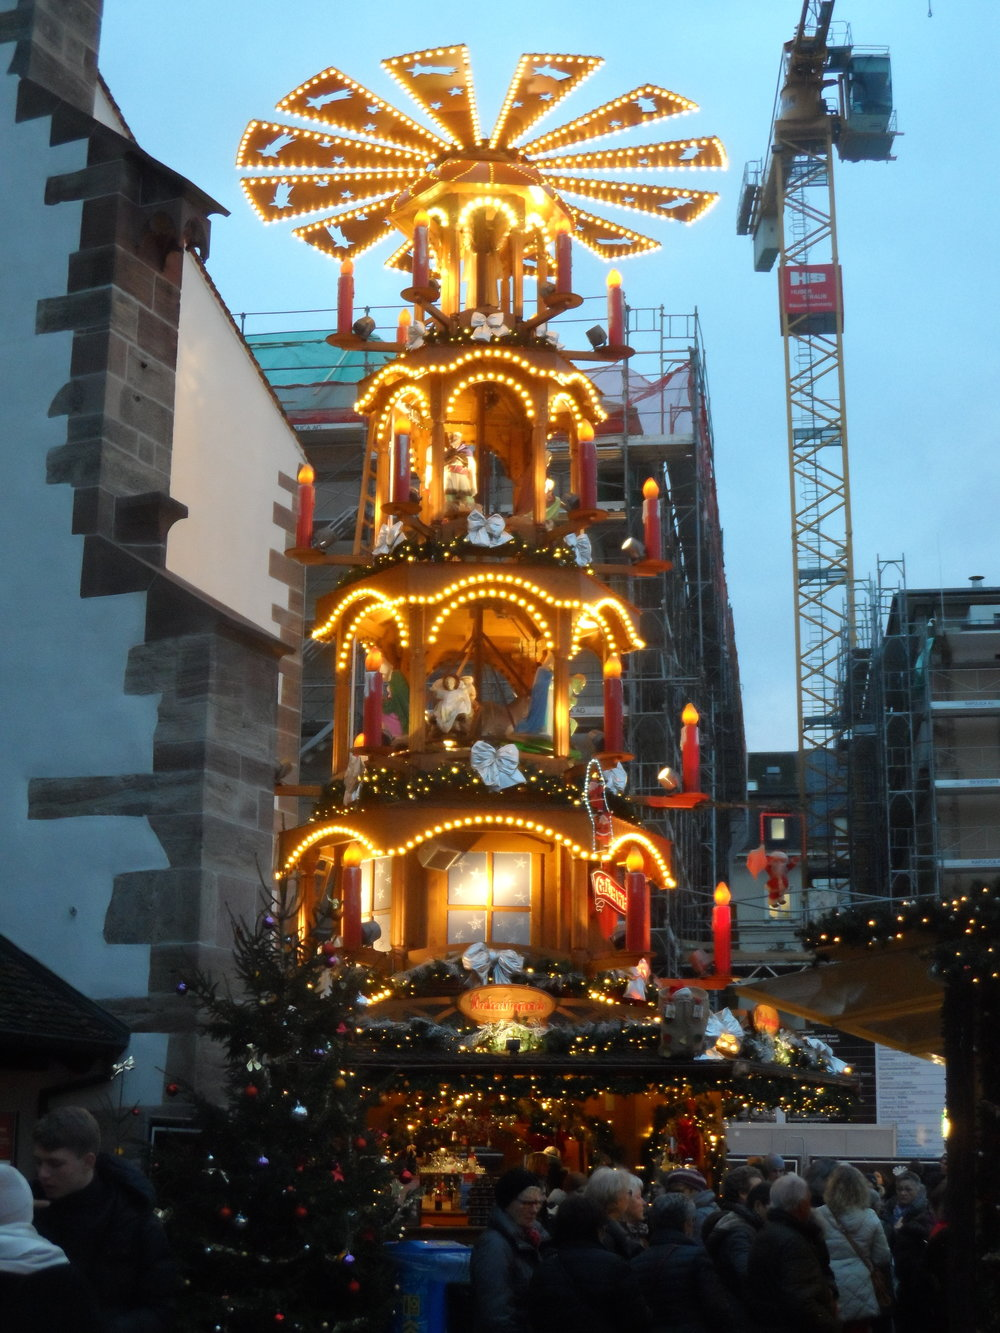 Anne took this picture in Basel, Switzerland—is a huge replica of a Christmas Candle Pyramid—a traditional decoration that originated in Germany